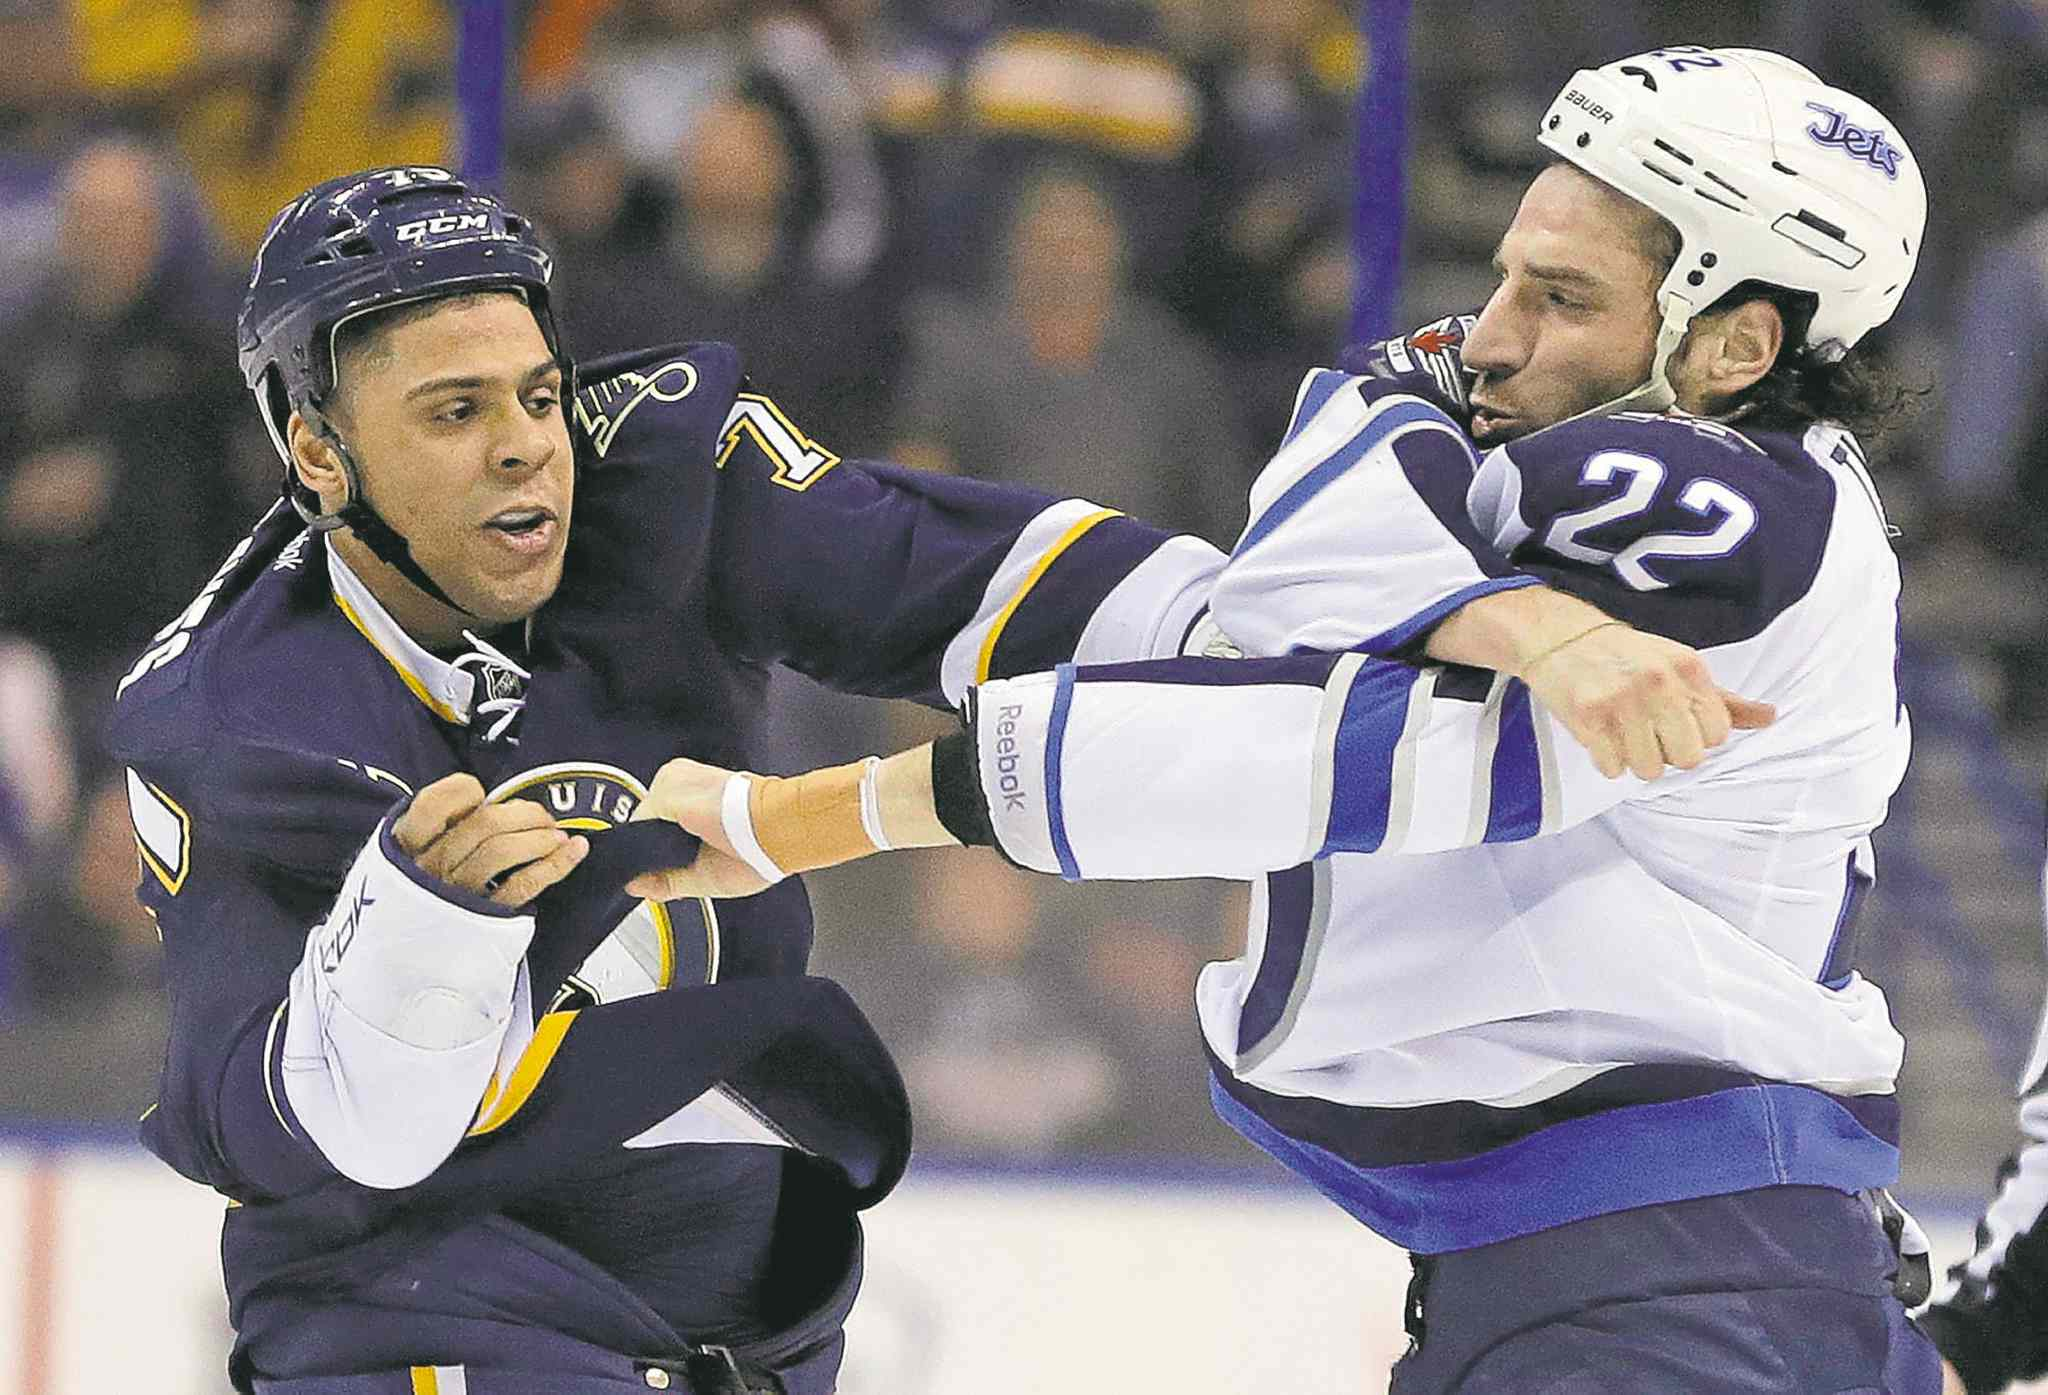 Winnipeg Jets' Chris Thorburn (right) dukes it with St. Louis Blues' Ryan Reaves last season.